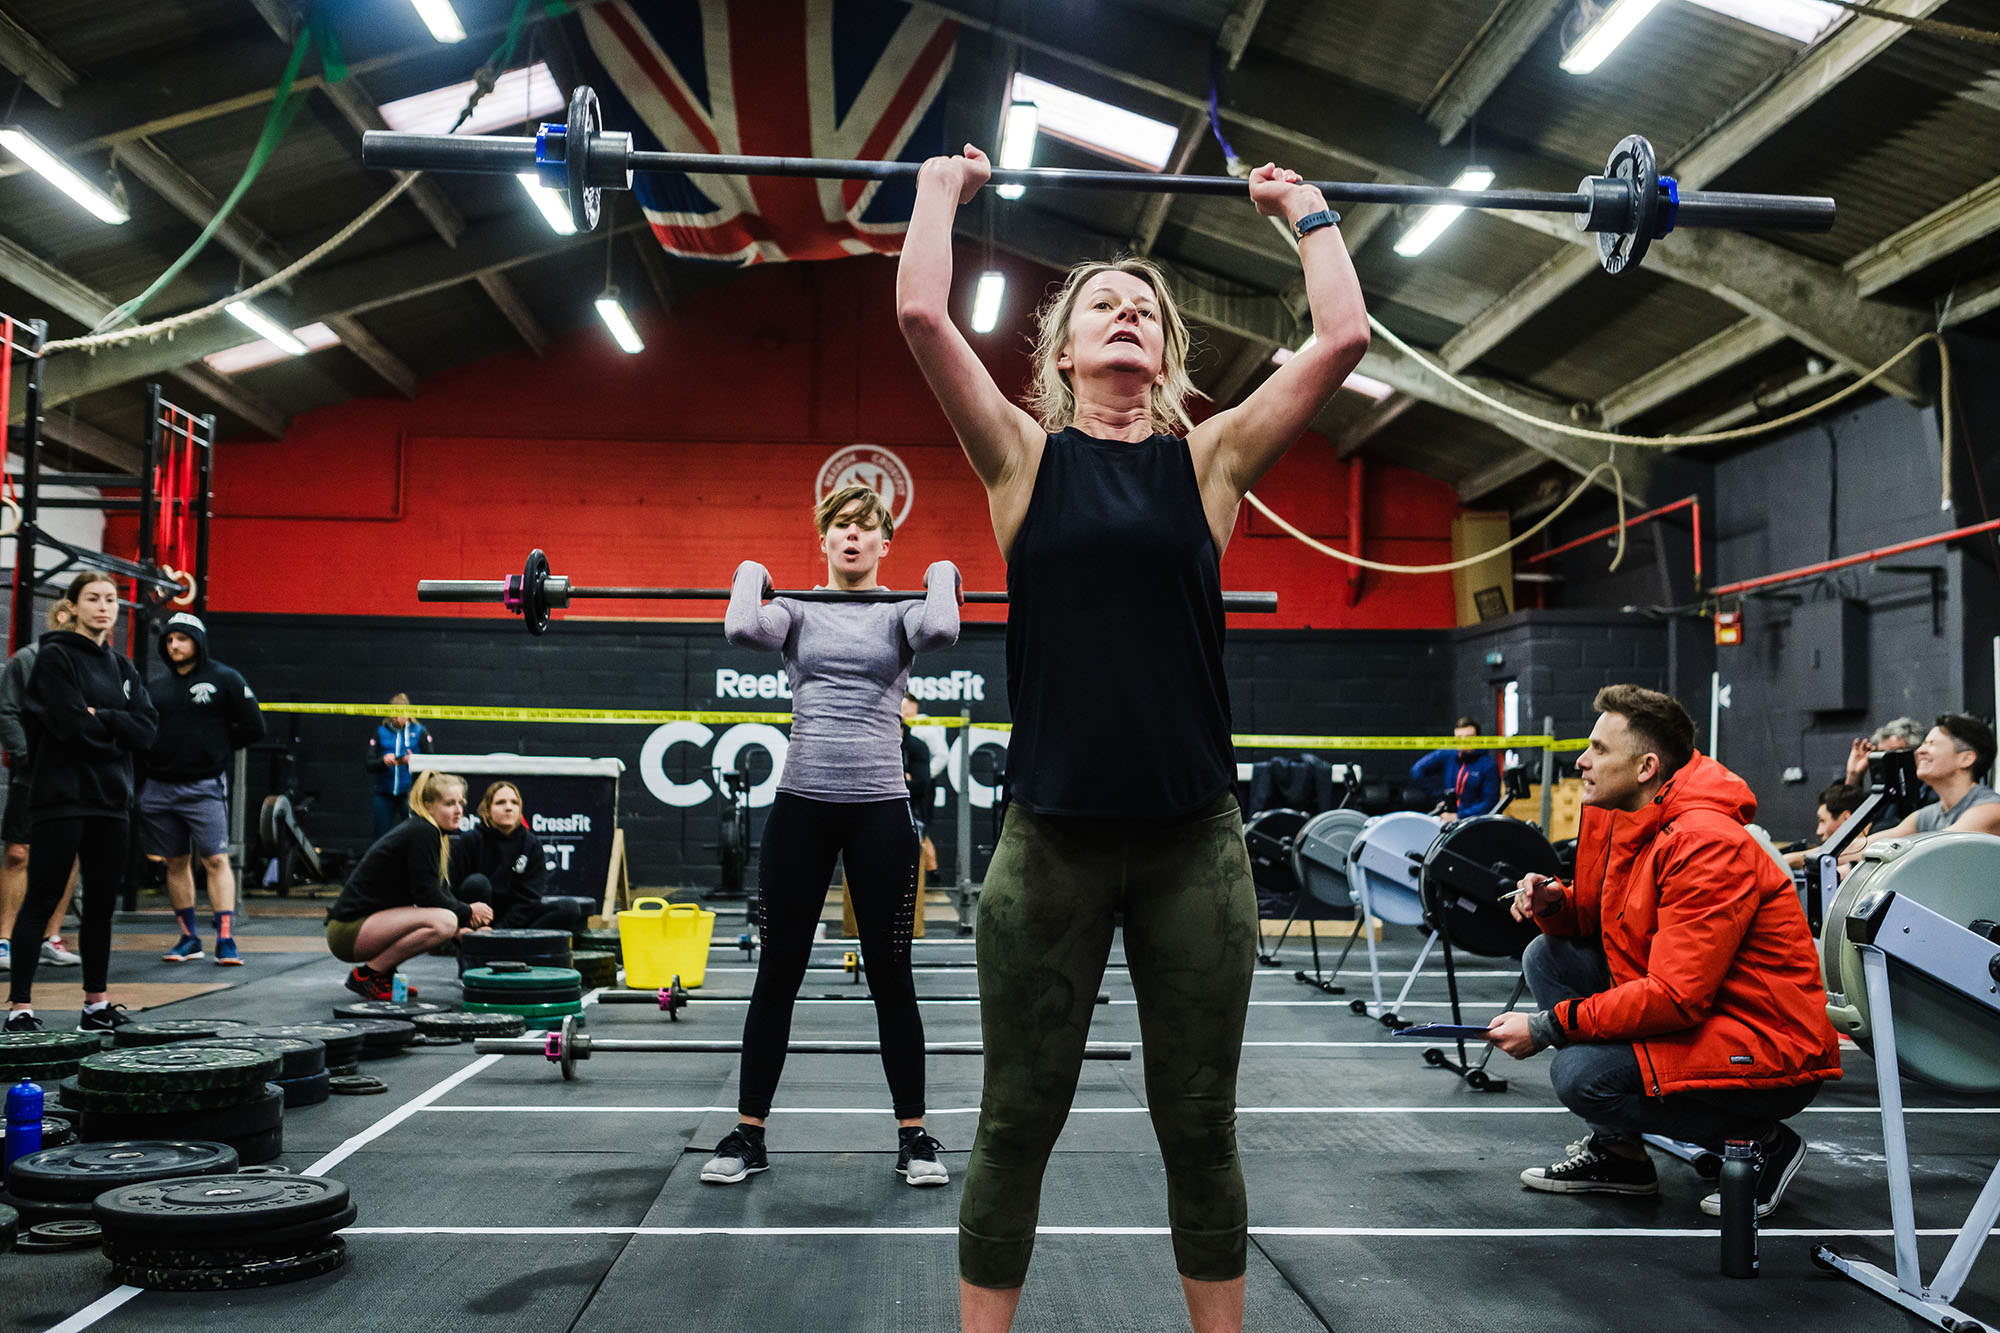 Crossfit event photography